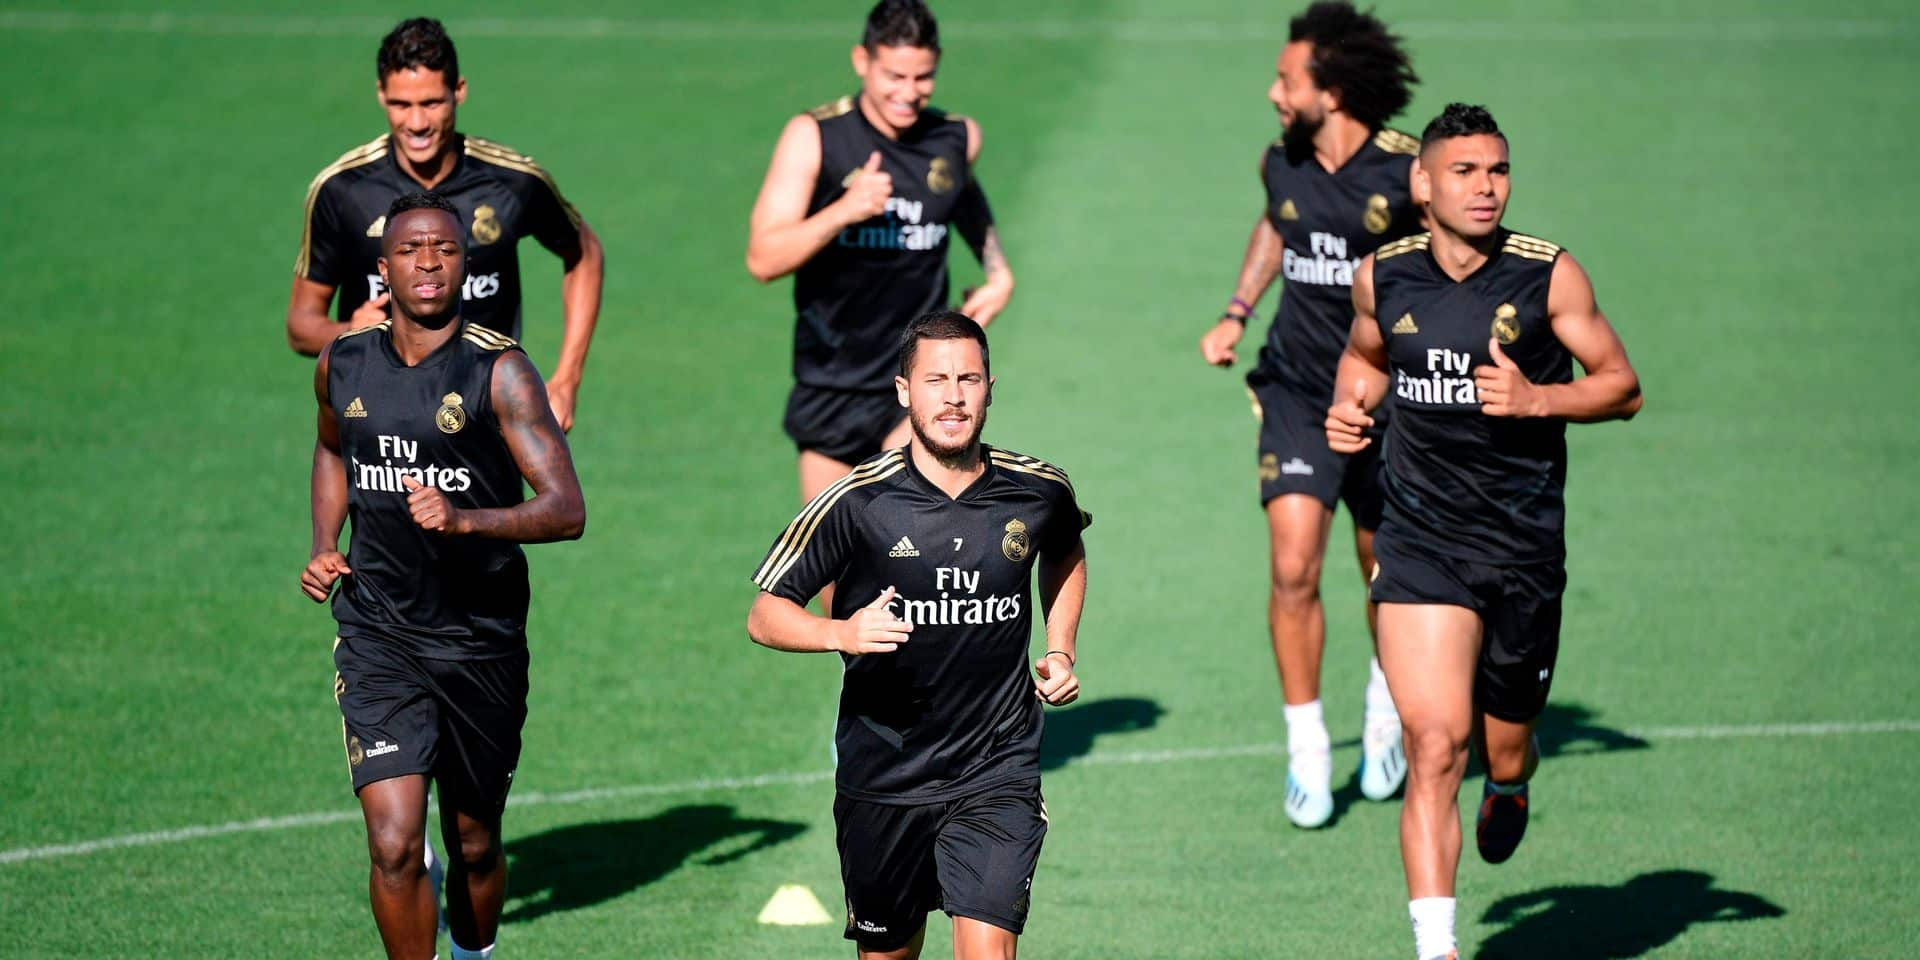 (FRONT L to R) Real Madrid's Brazilian forward Vinicius Junior, Real Madrid's Belgian forward Eden Hazard, Real Madrid's Brazilian midfielder Casemiro (BACK L to R) Real Madrid's French defender Raphael Varane, Real Madrid's Colombian midfielder James Rodriguez and Real Madrid's Brazilian defender Marcelo take part in a training session at Real Madrid's sport city in Madrid on August 16, 2019. (Photo by JAVIER SORIANO / AFP)